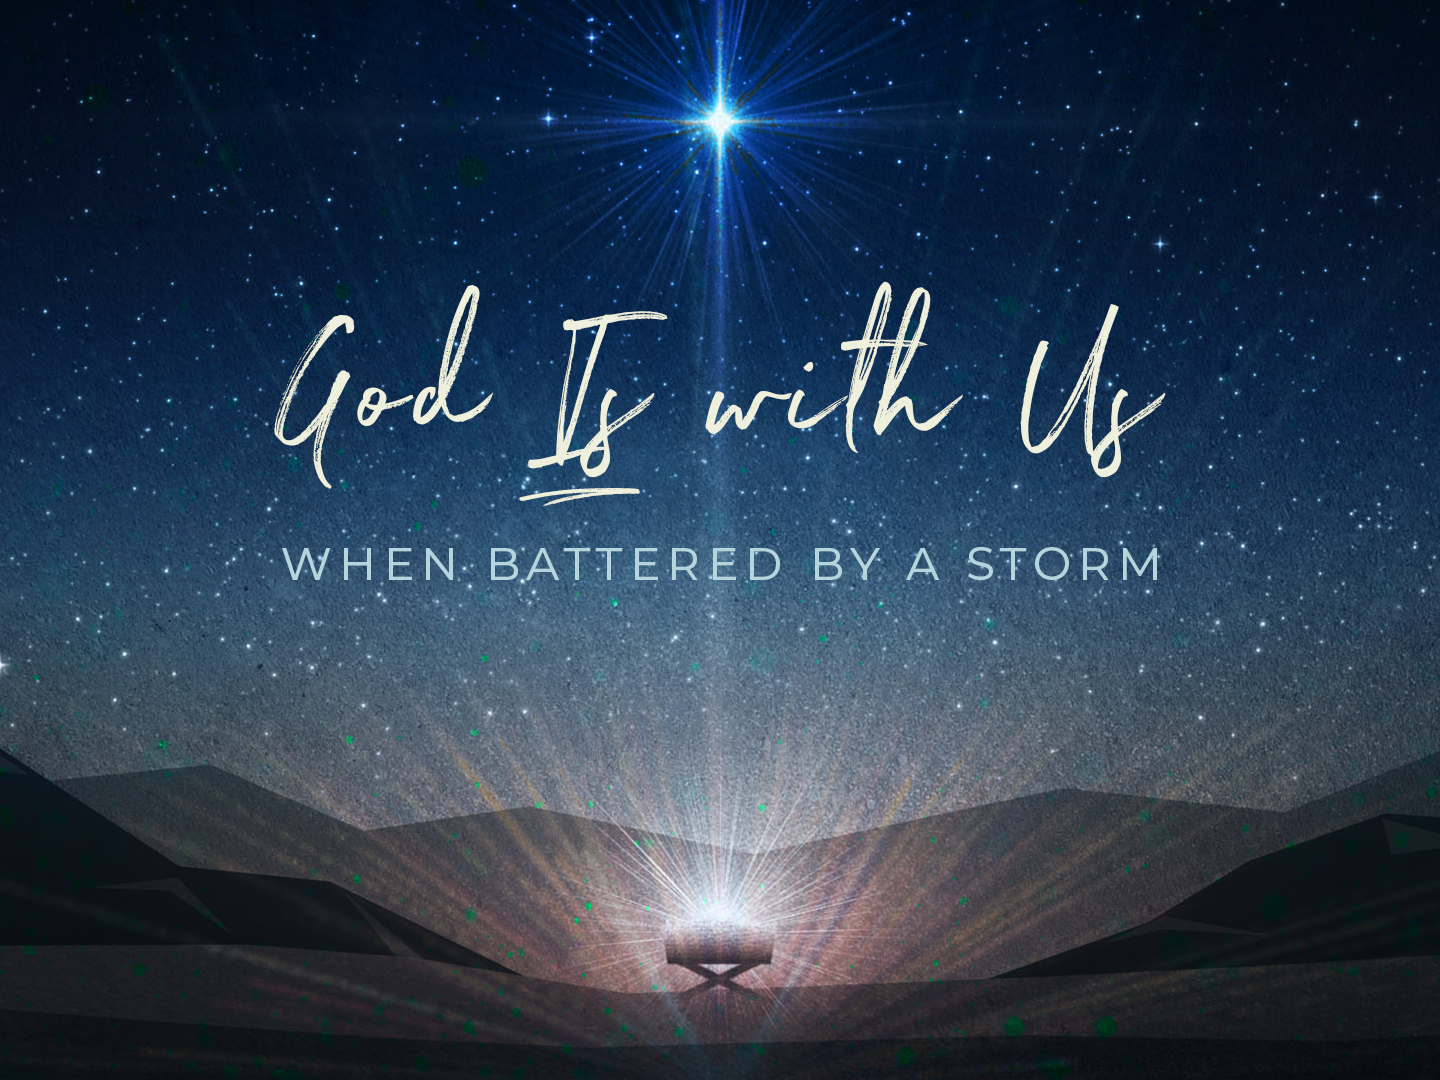 12-23-2018 God is with us.jpg